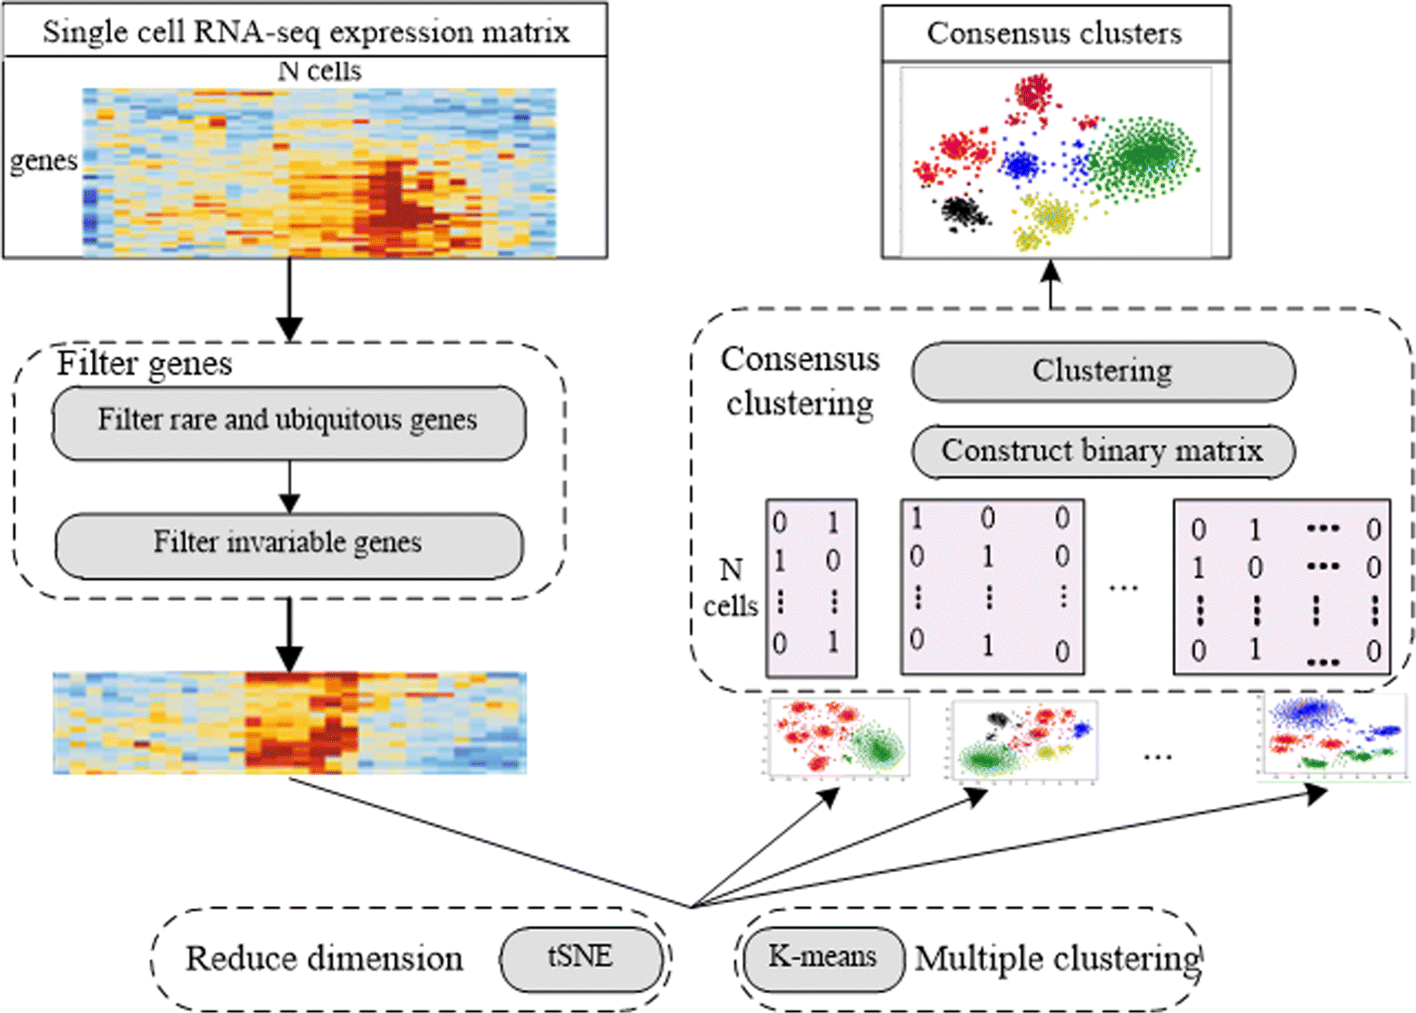 Identification of cancer subtypes from single-cell RNA-seq data